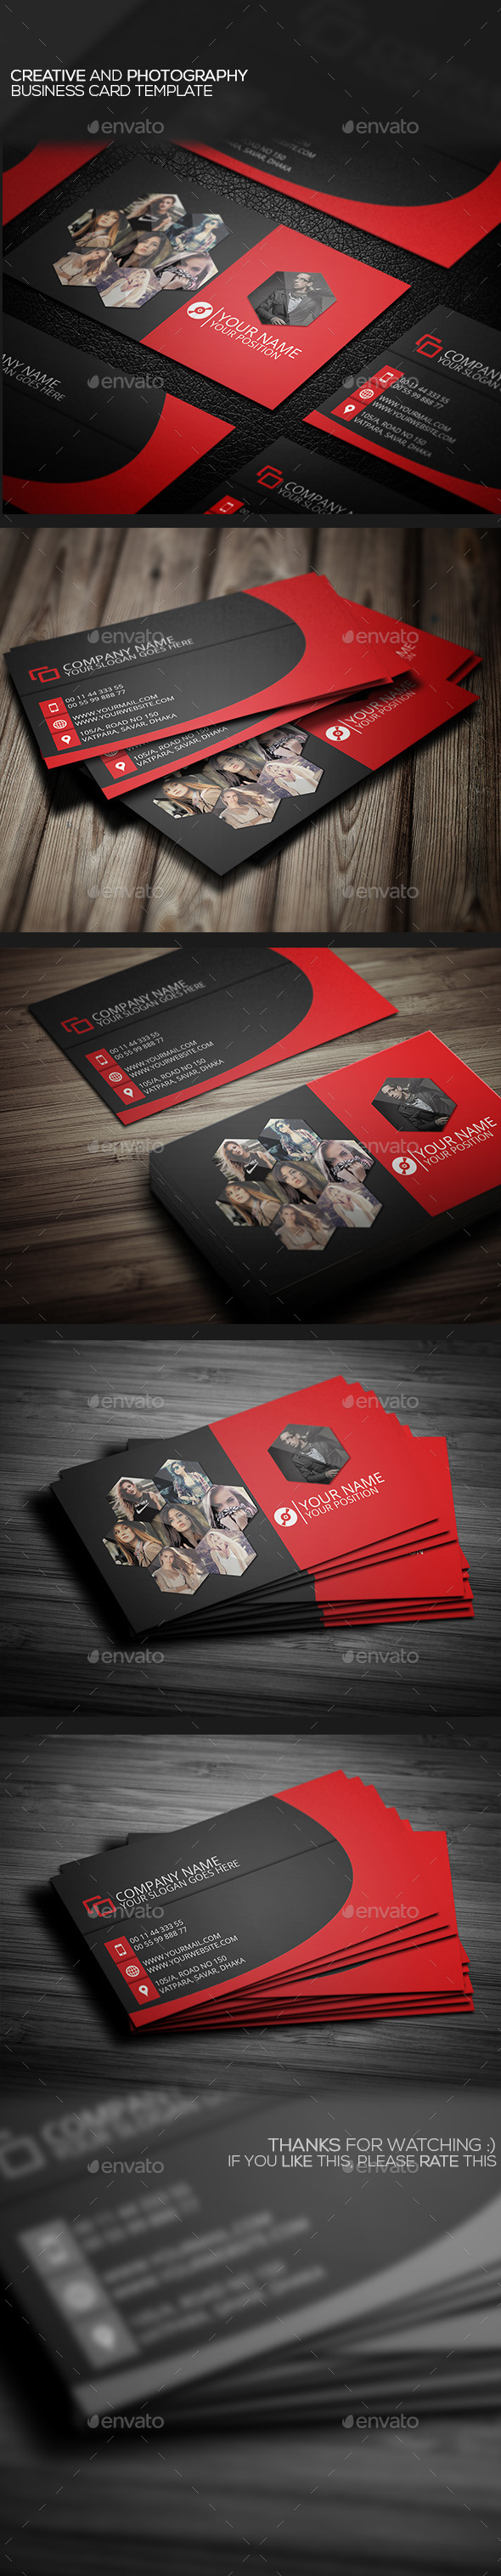 GraphicRiver Creative And Photography Business Card Template 10272102